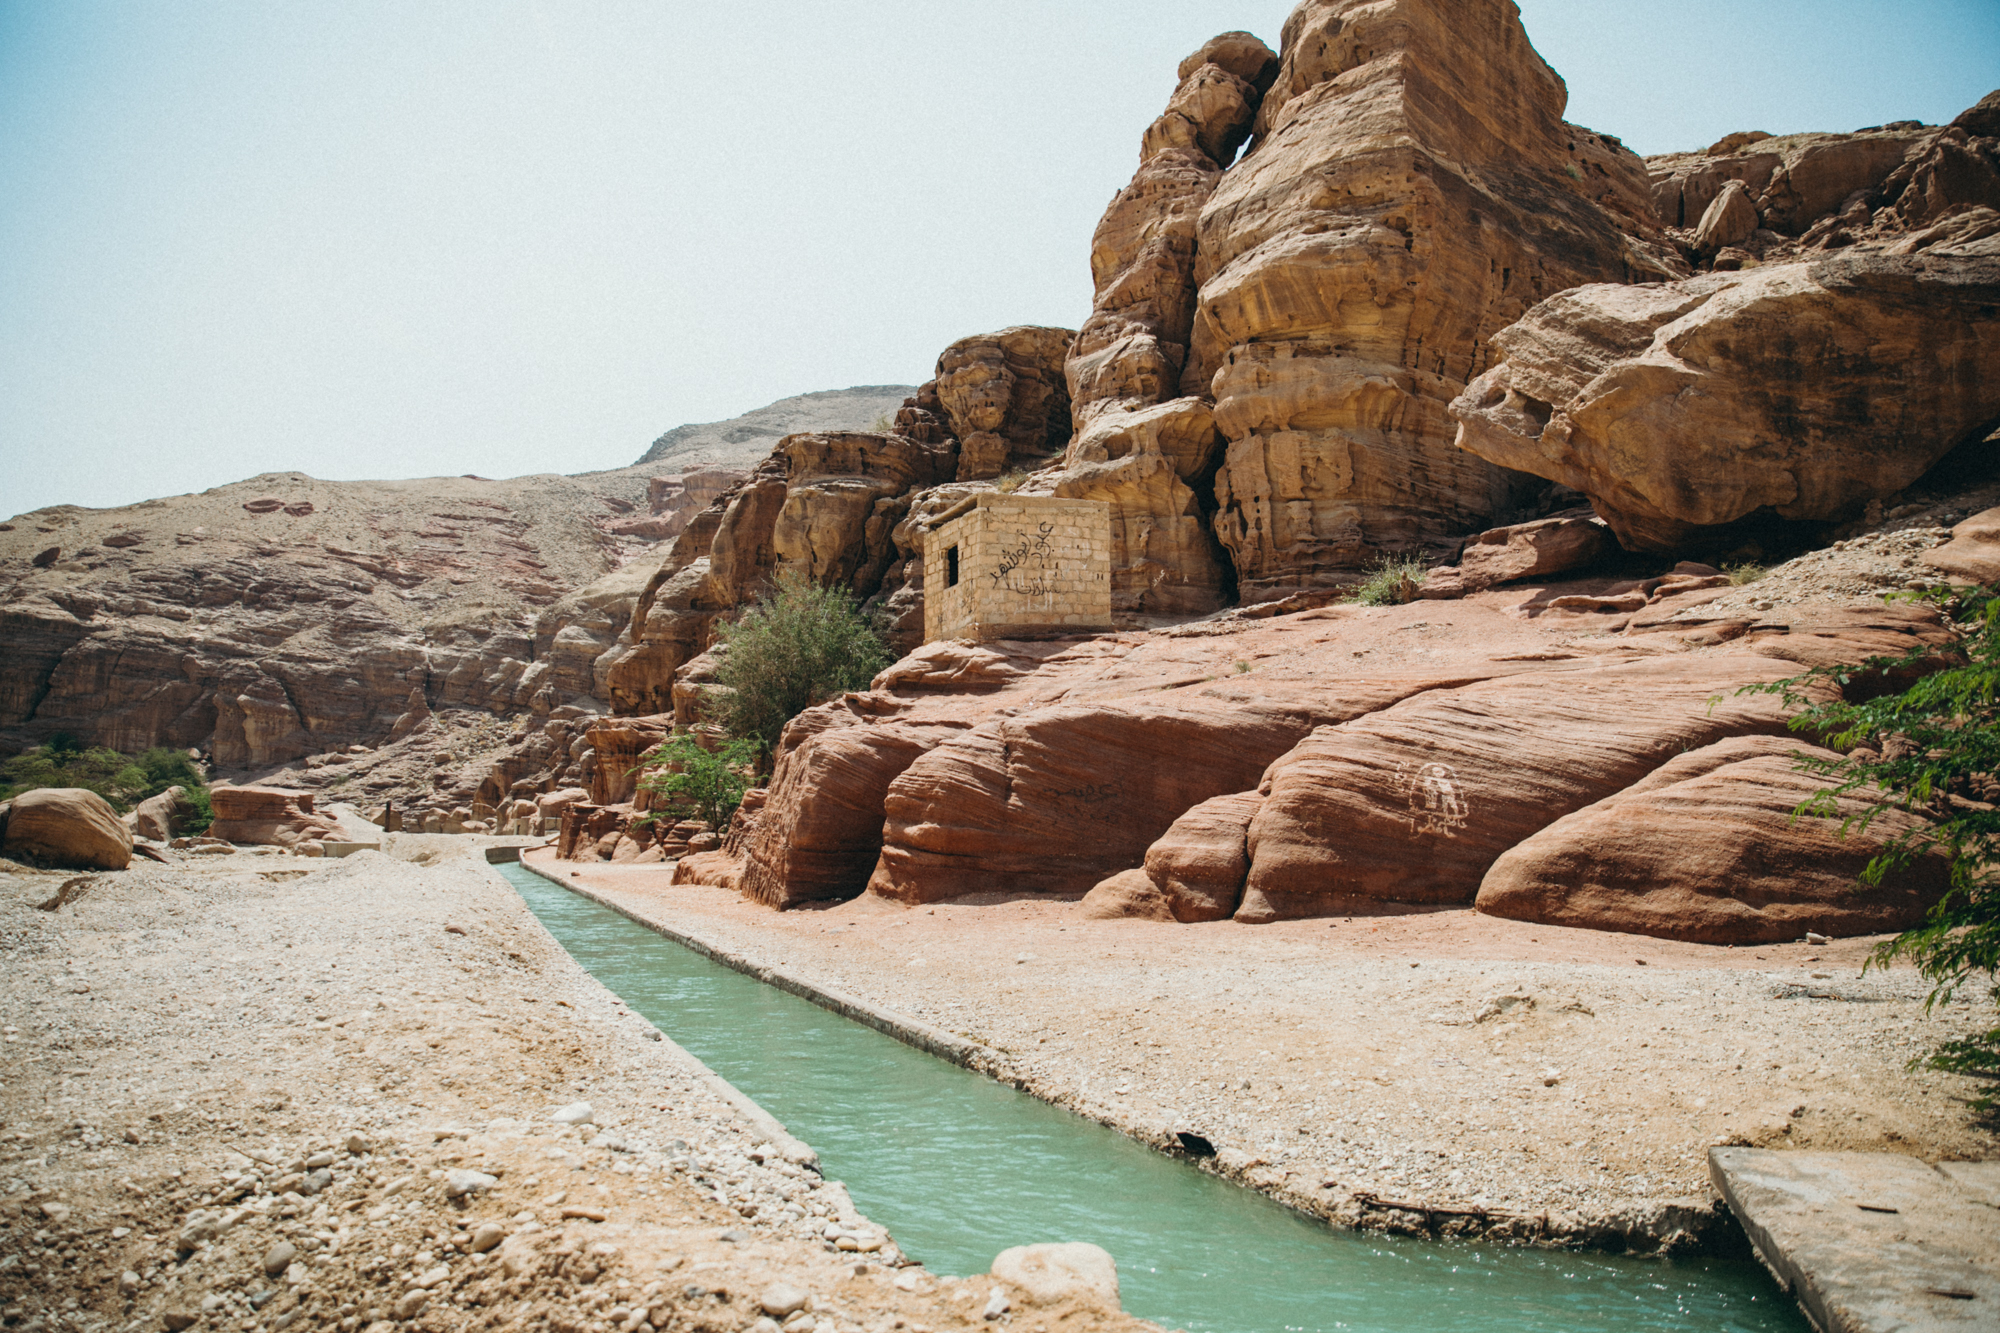 The canal turned into a small river that ran throughout the whole canyon. It was crazy hot out, so it was nice being able to walk in the water the whole way!